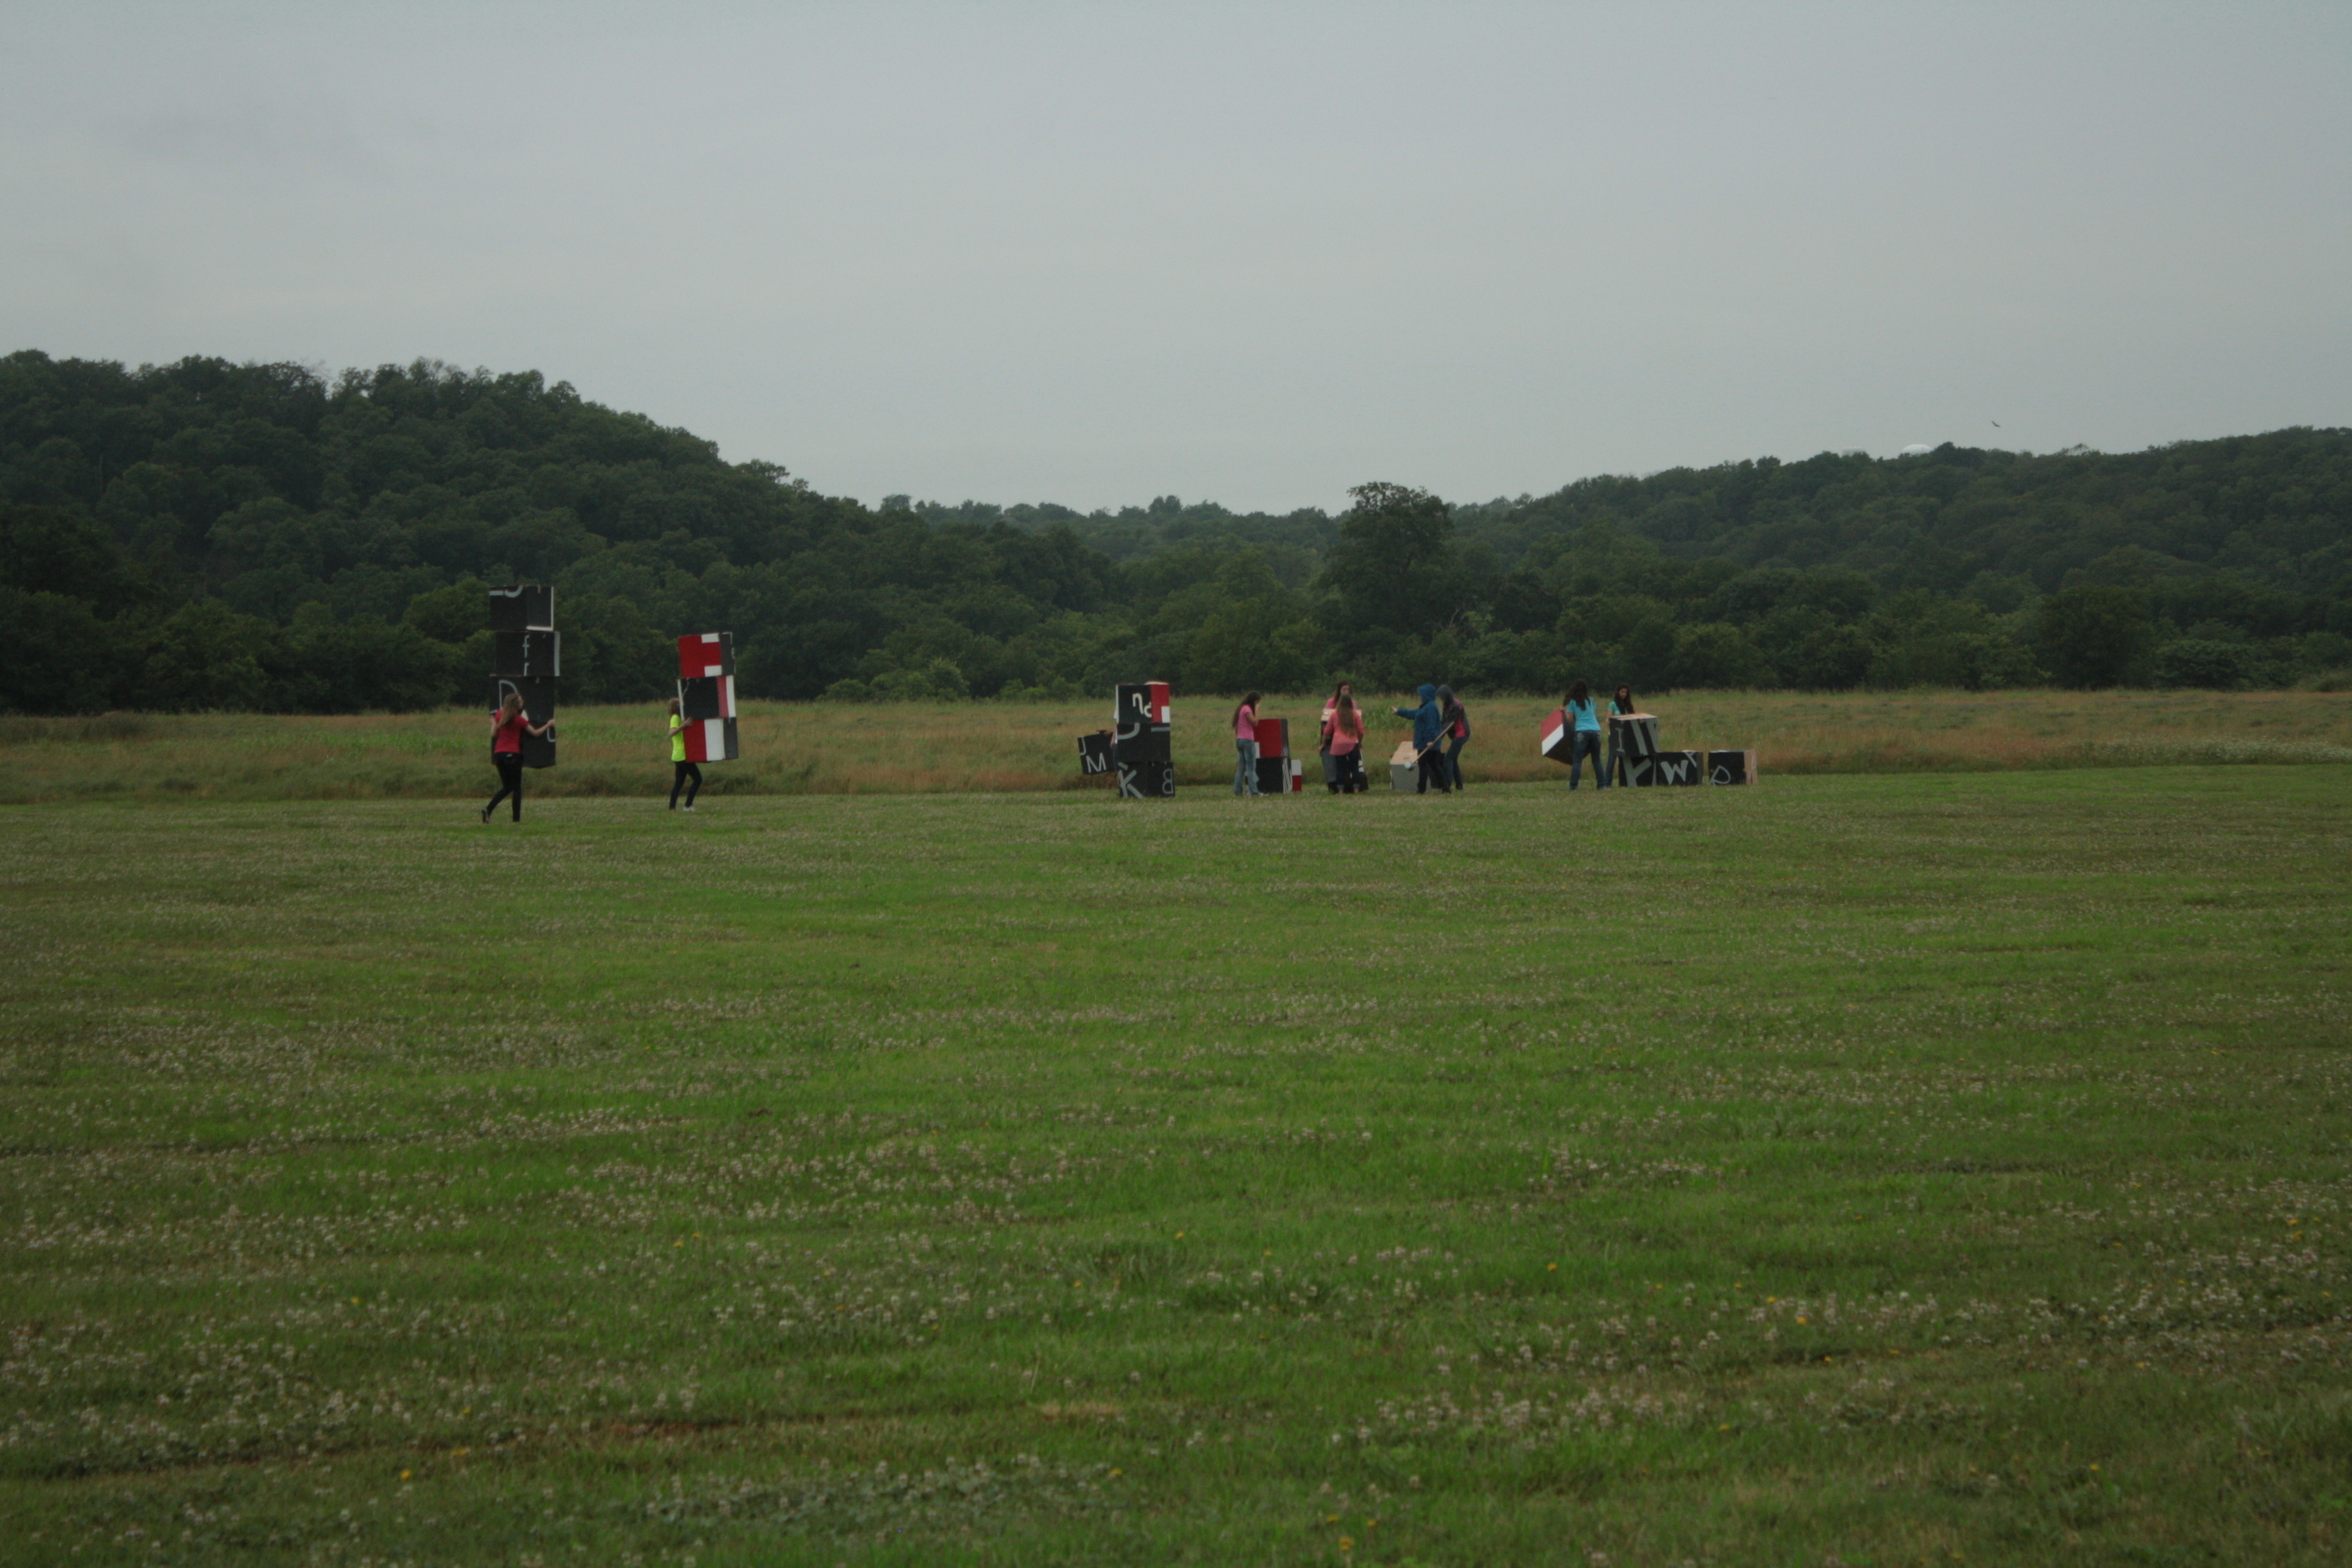 The students carrying their boxes to the middle of the field.